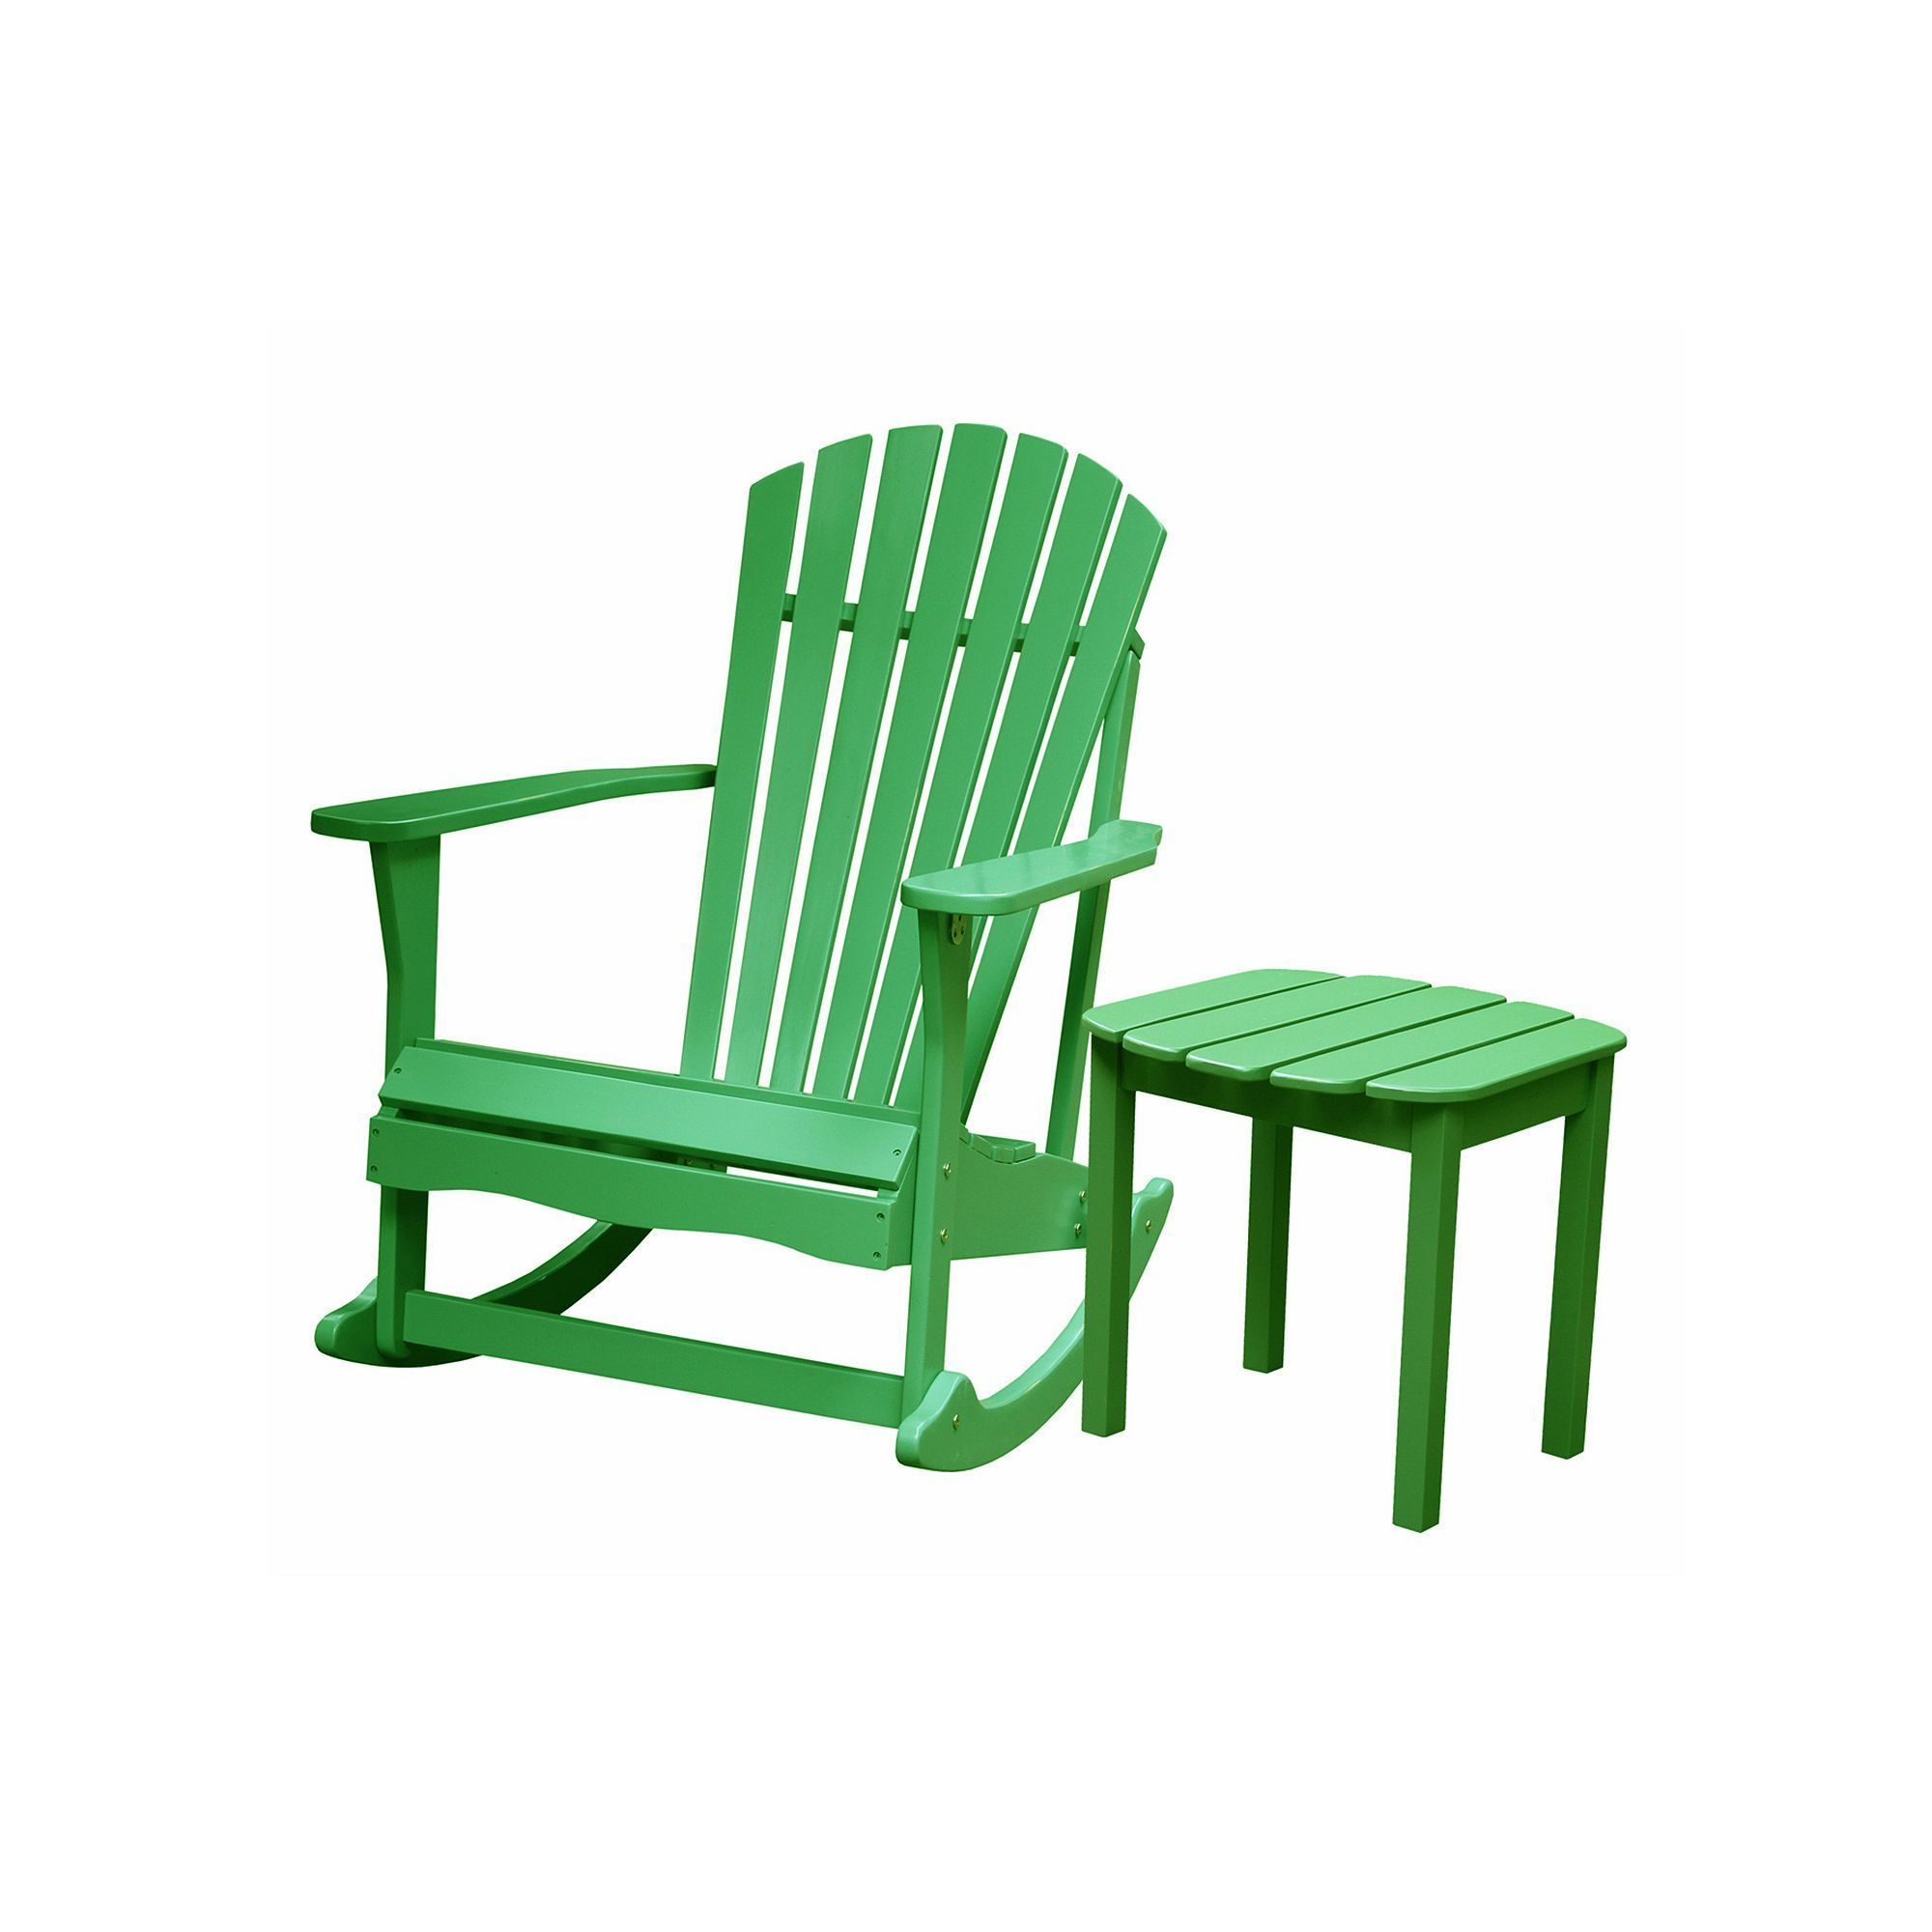 chair rocking creative furniture with design designing decorating in adirondack template worthy home modern inspiration